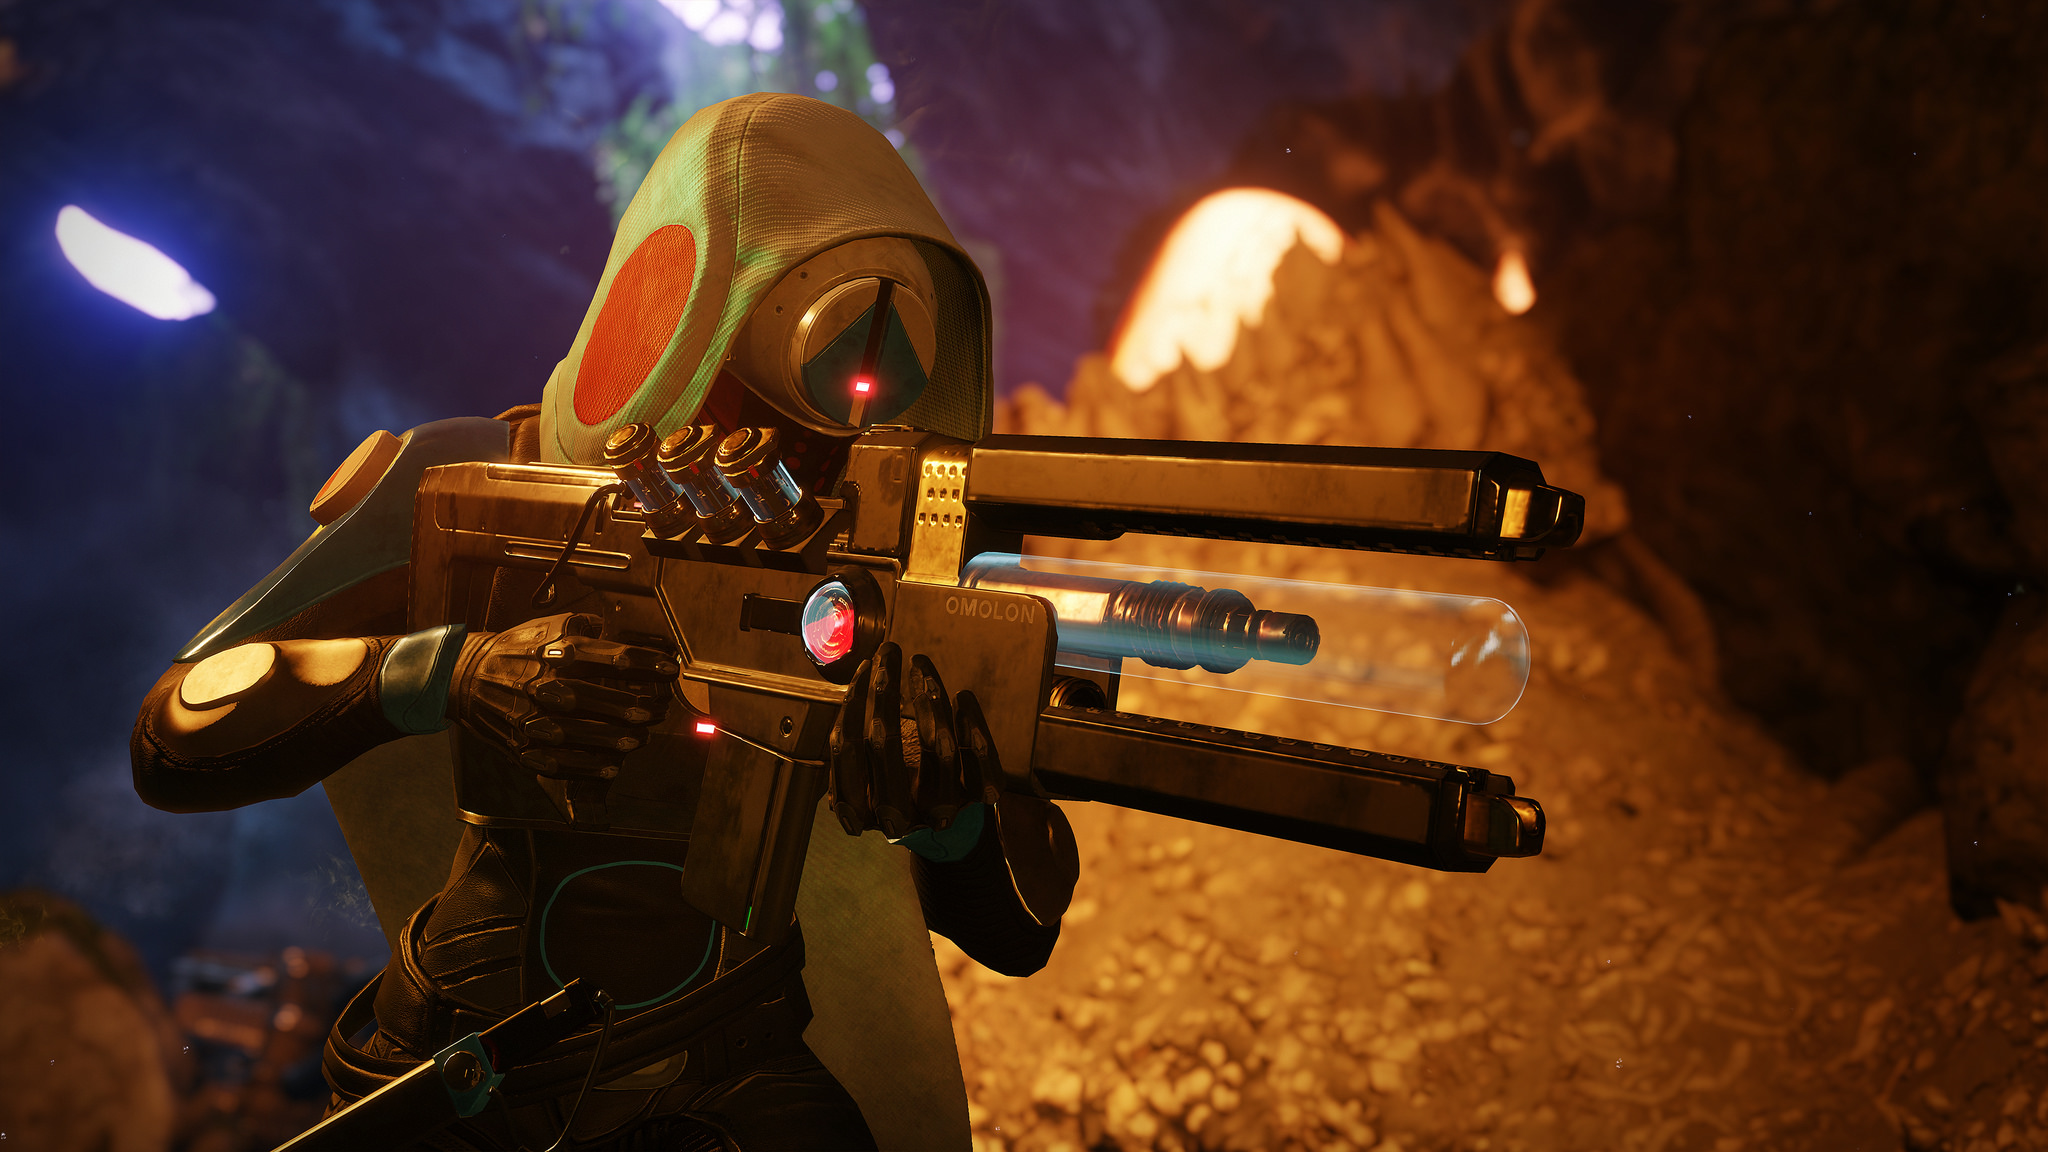 destiny 2 forsaken oracle engine offering and corsair down quests vg247